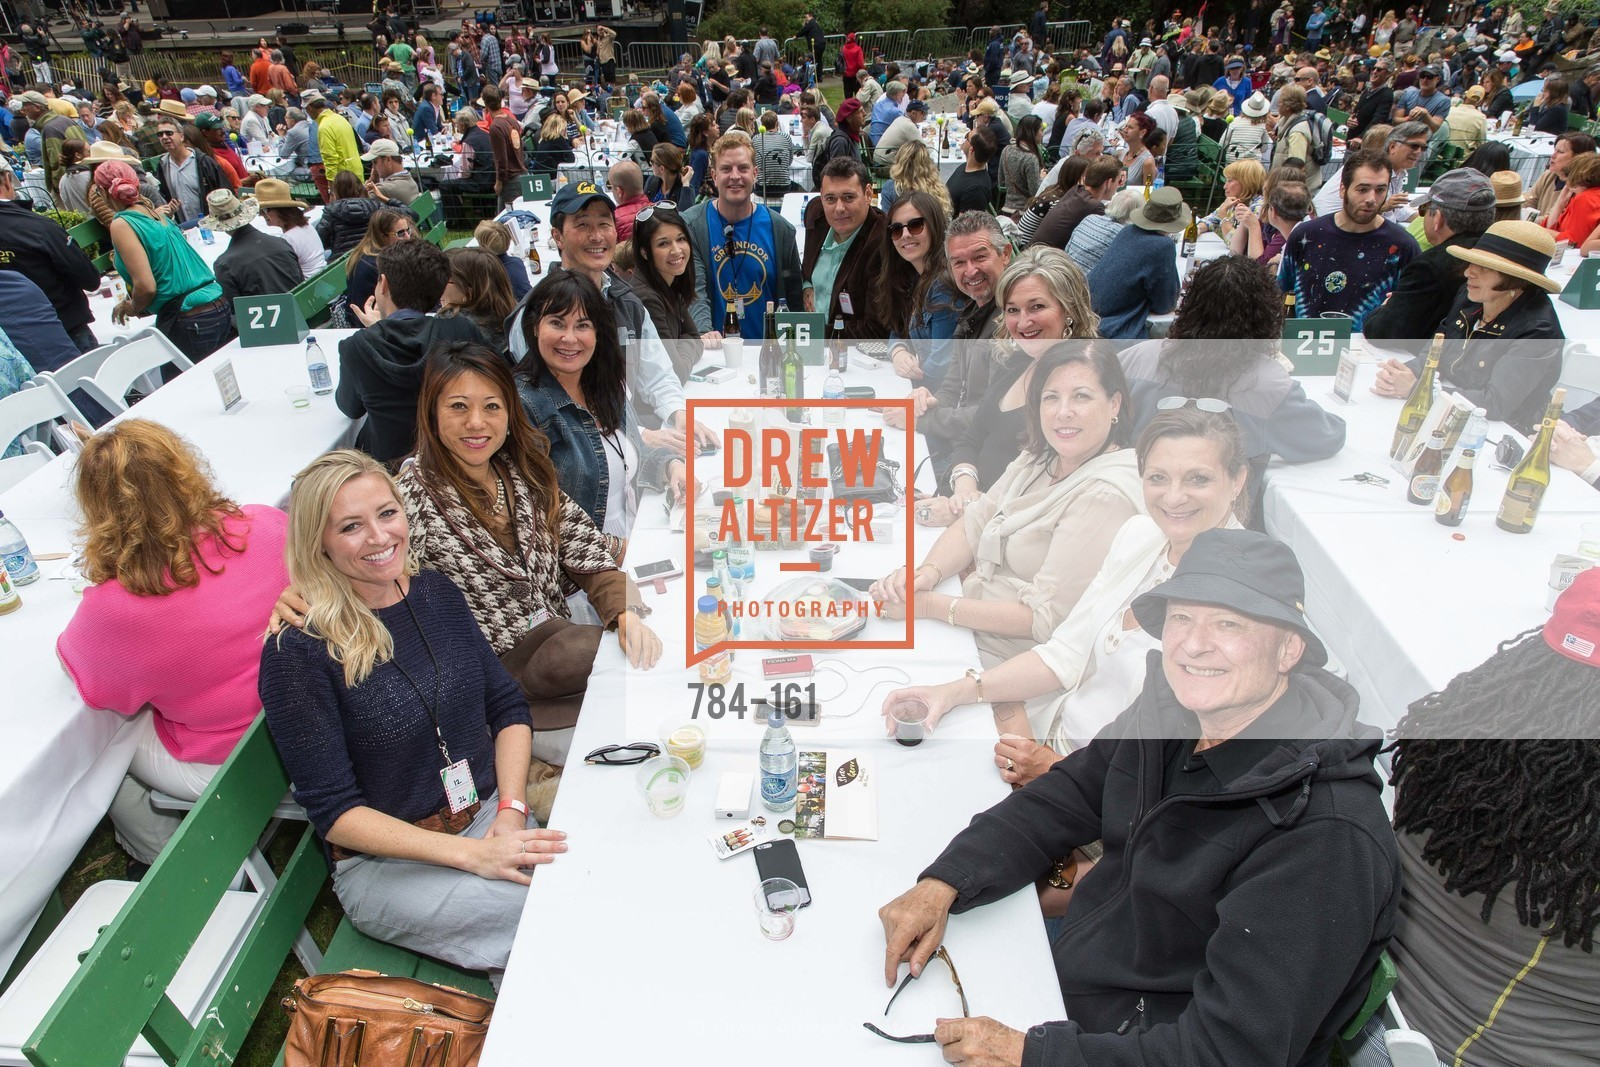 Extras, THE BIG PICNIC Kicking off  2015 Stern Grove Season, June 14th, 2015, Photo,Drew Altizer, Drew Altizer Photography, full-service event agency, private events, San Francisco photographer, photographer California